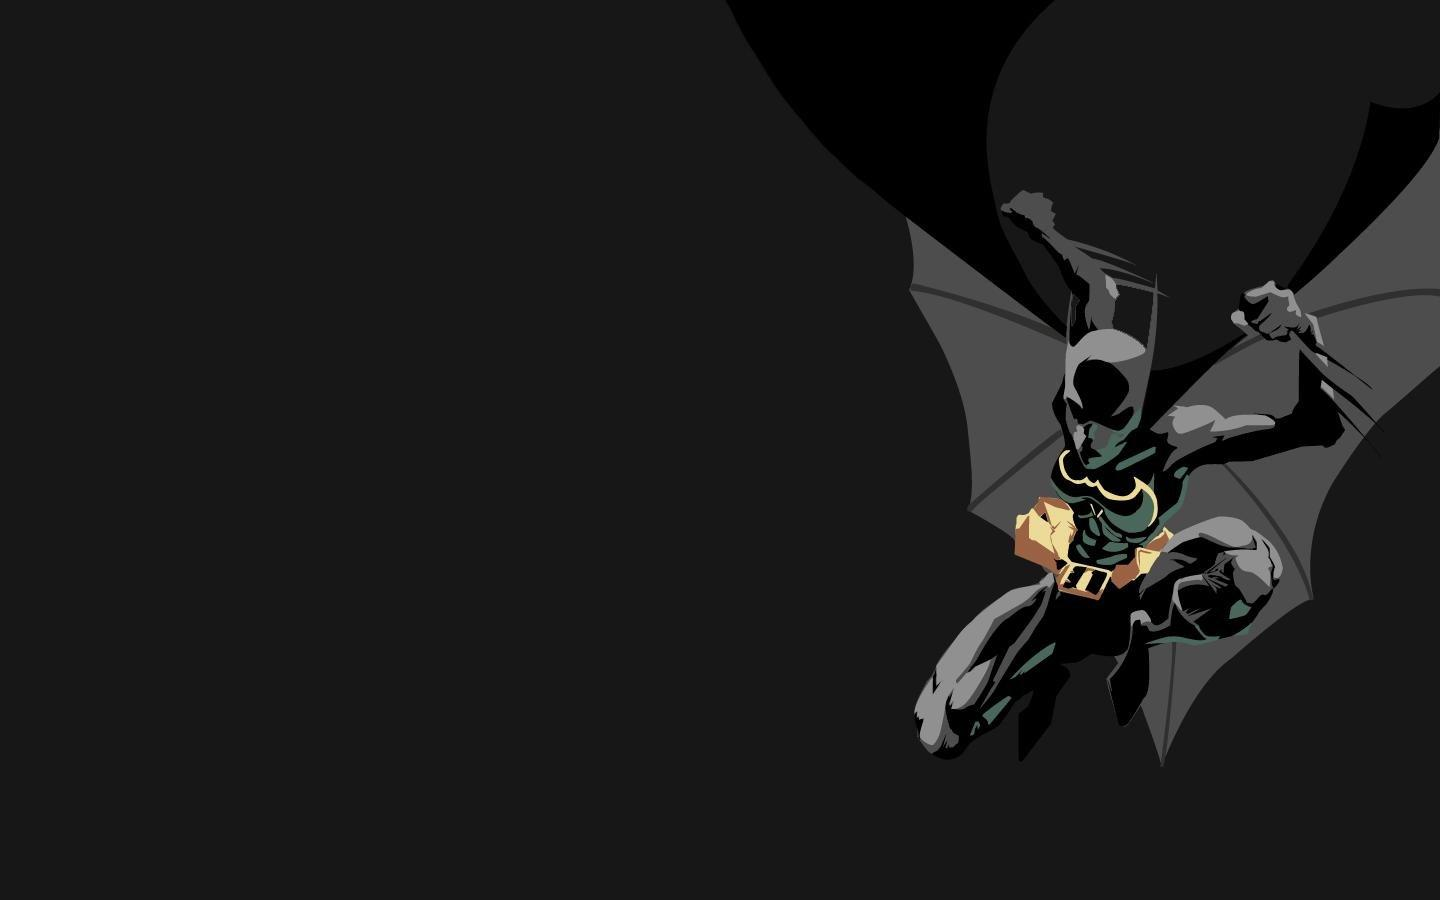 Batgirl Cassandra Cain wallpapers